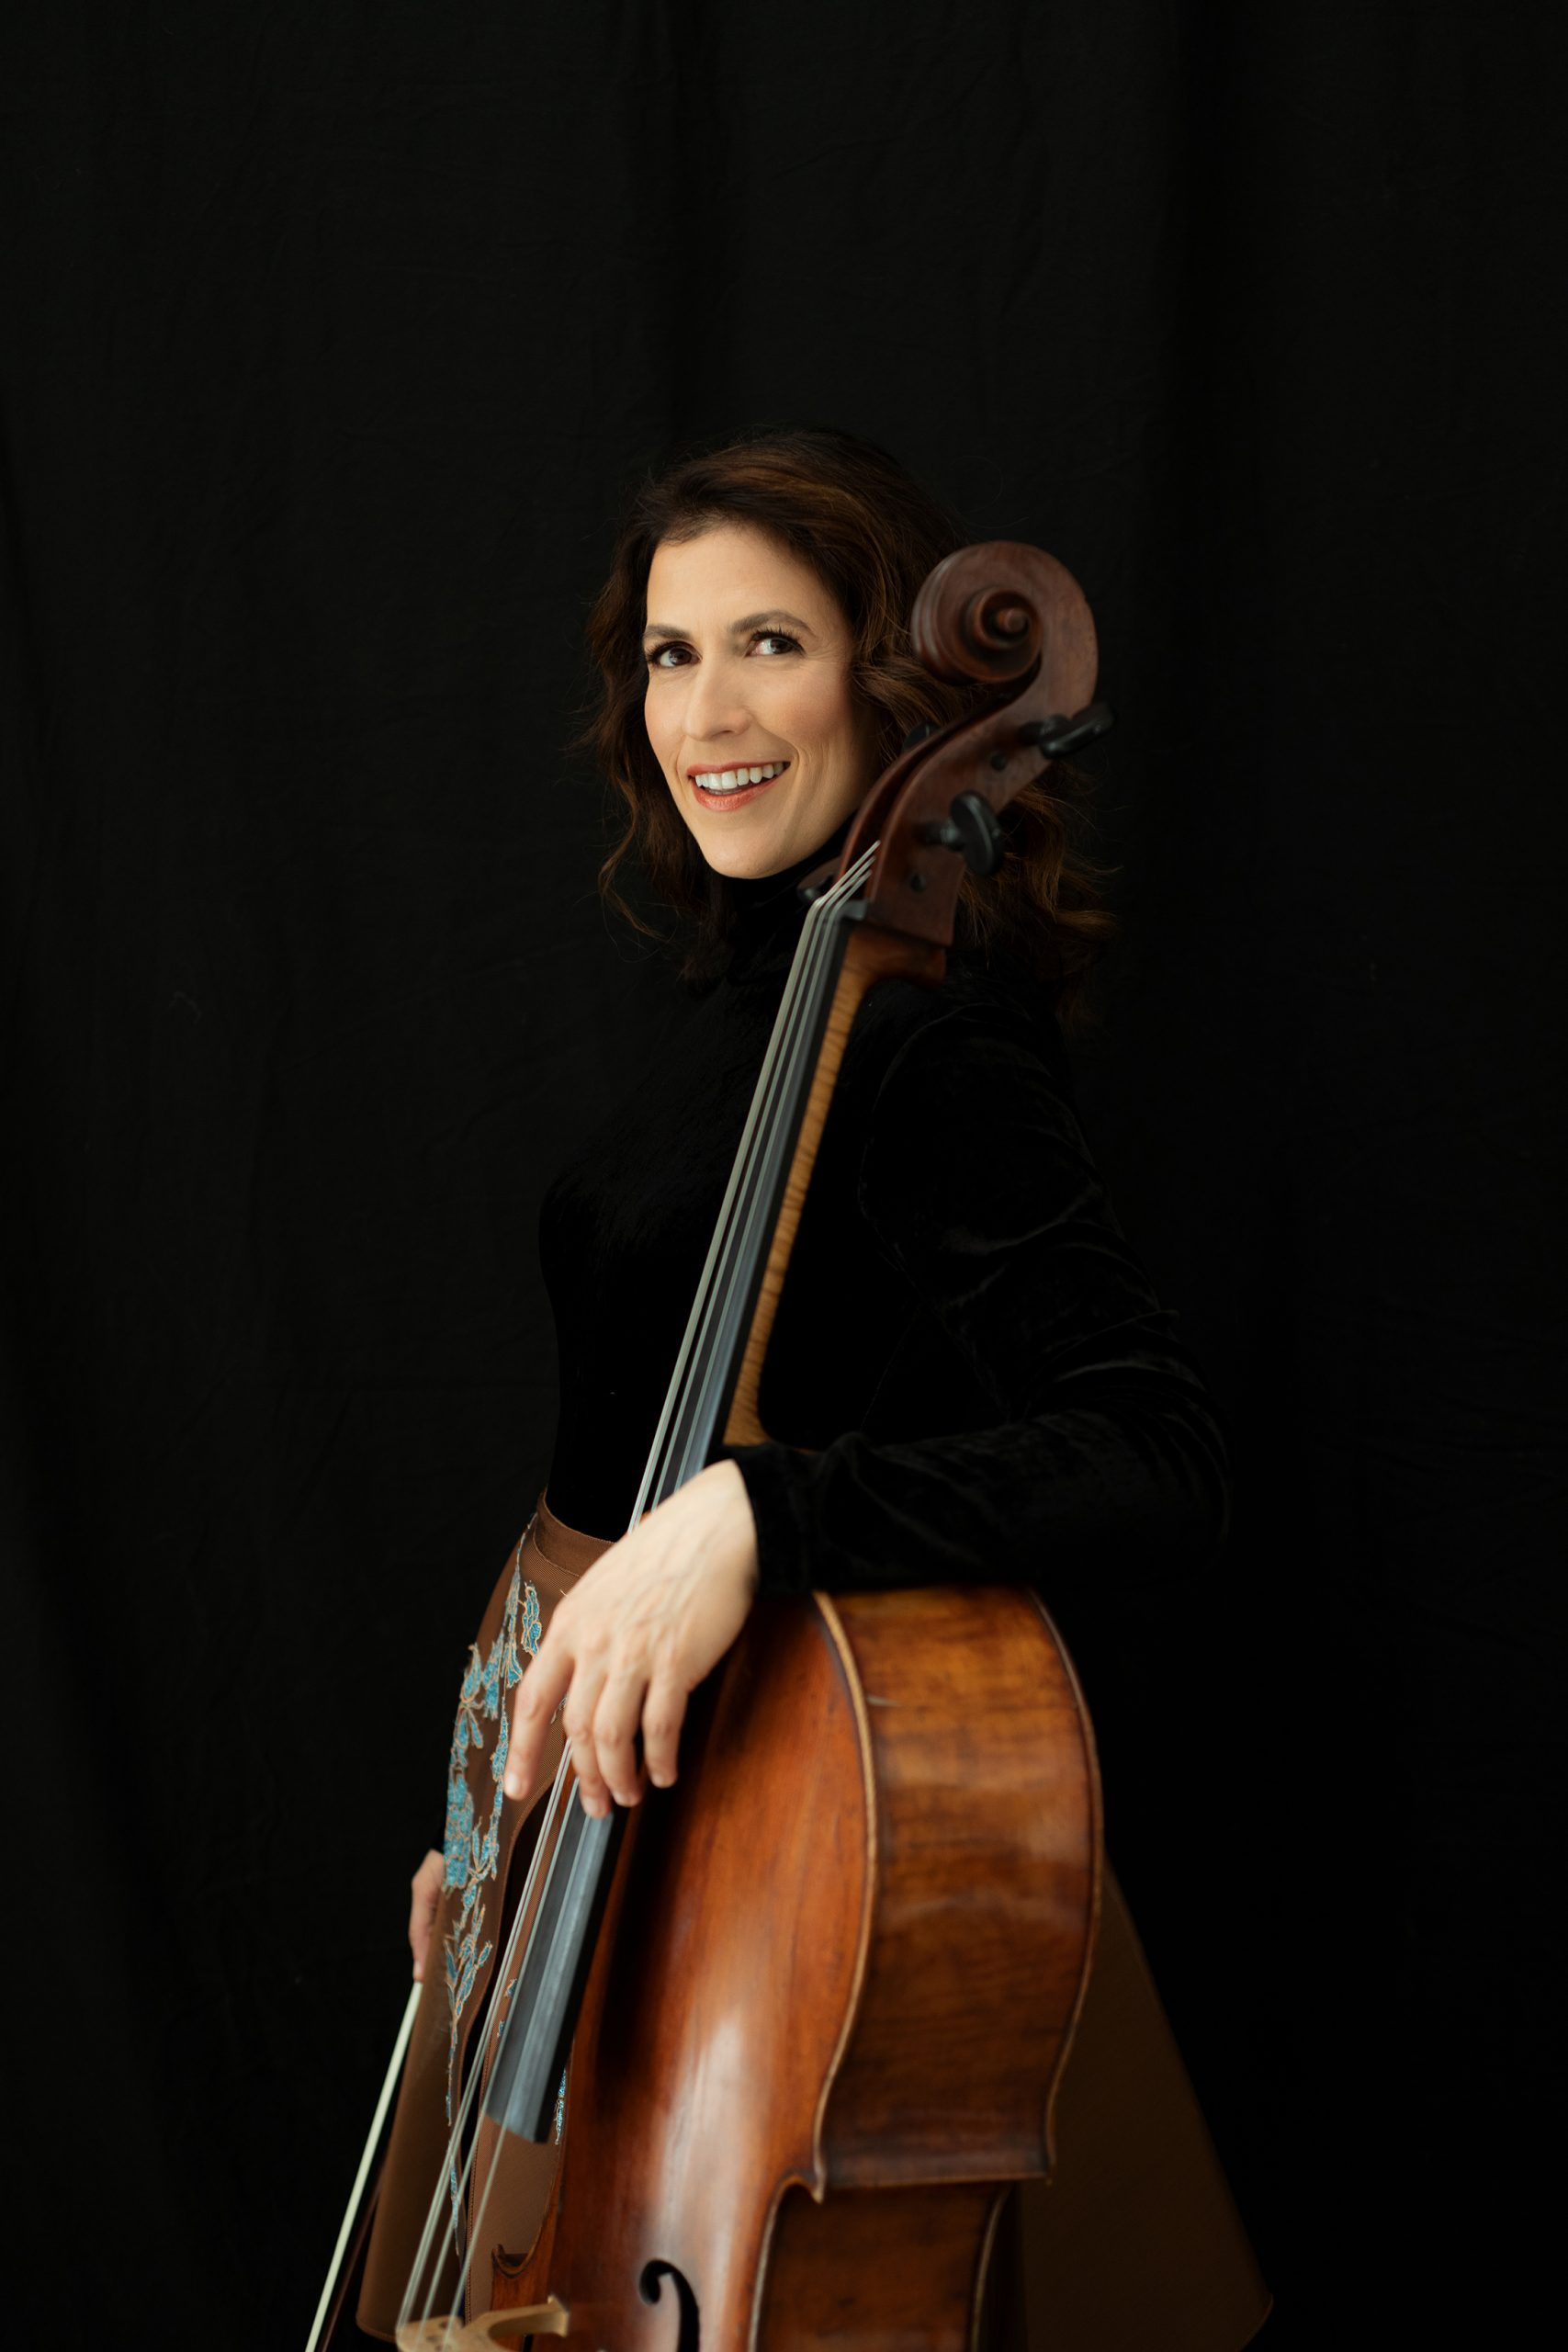 Inbal Segev stands with her cello against a black background smiling and wearing a black top and a brown skirt with a blue flower pattern.